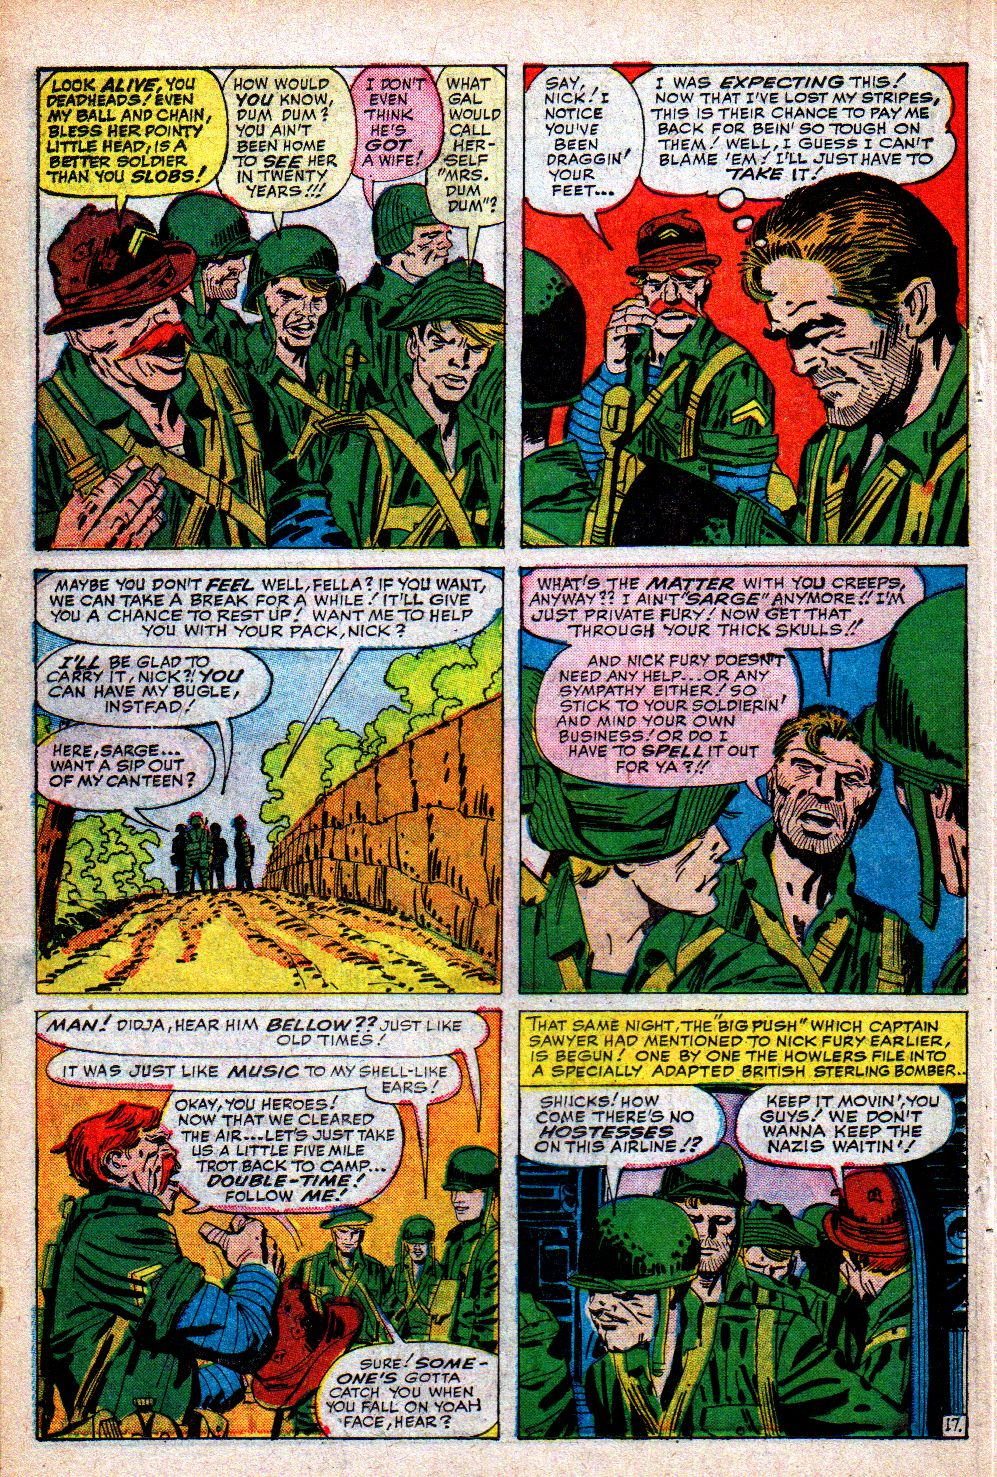 Read online Sgt. Fury comic -  Issue #5 - 22